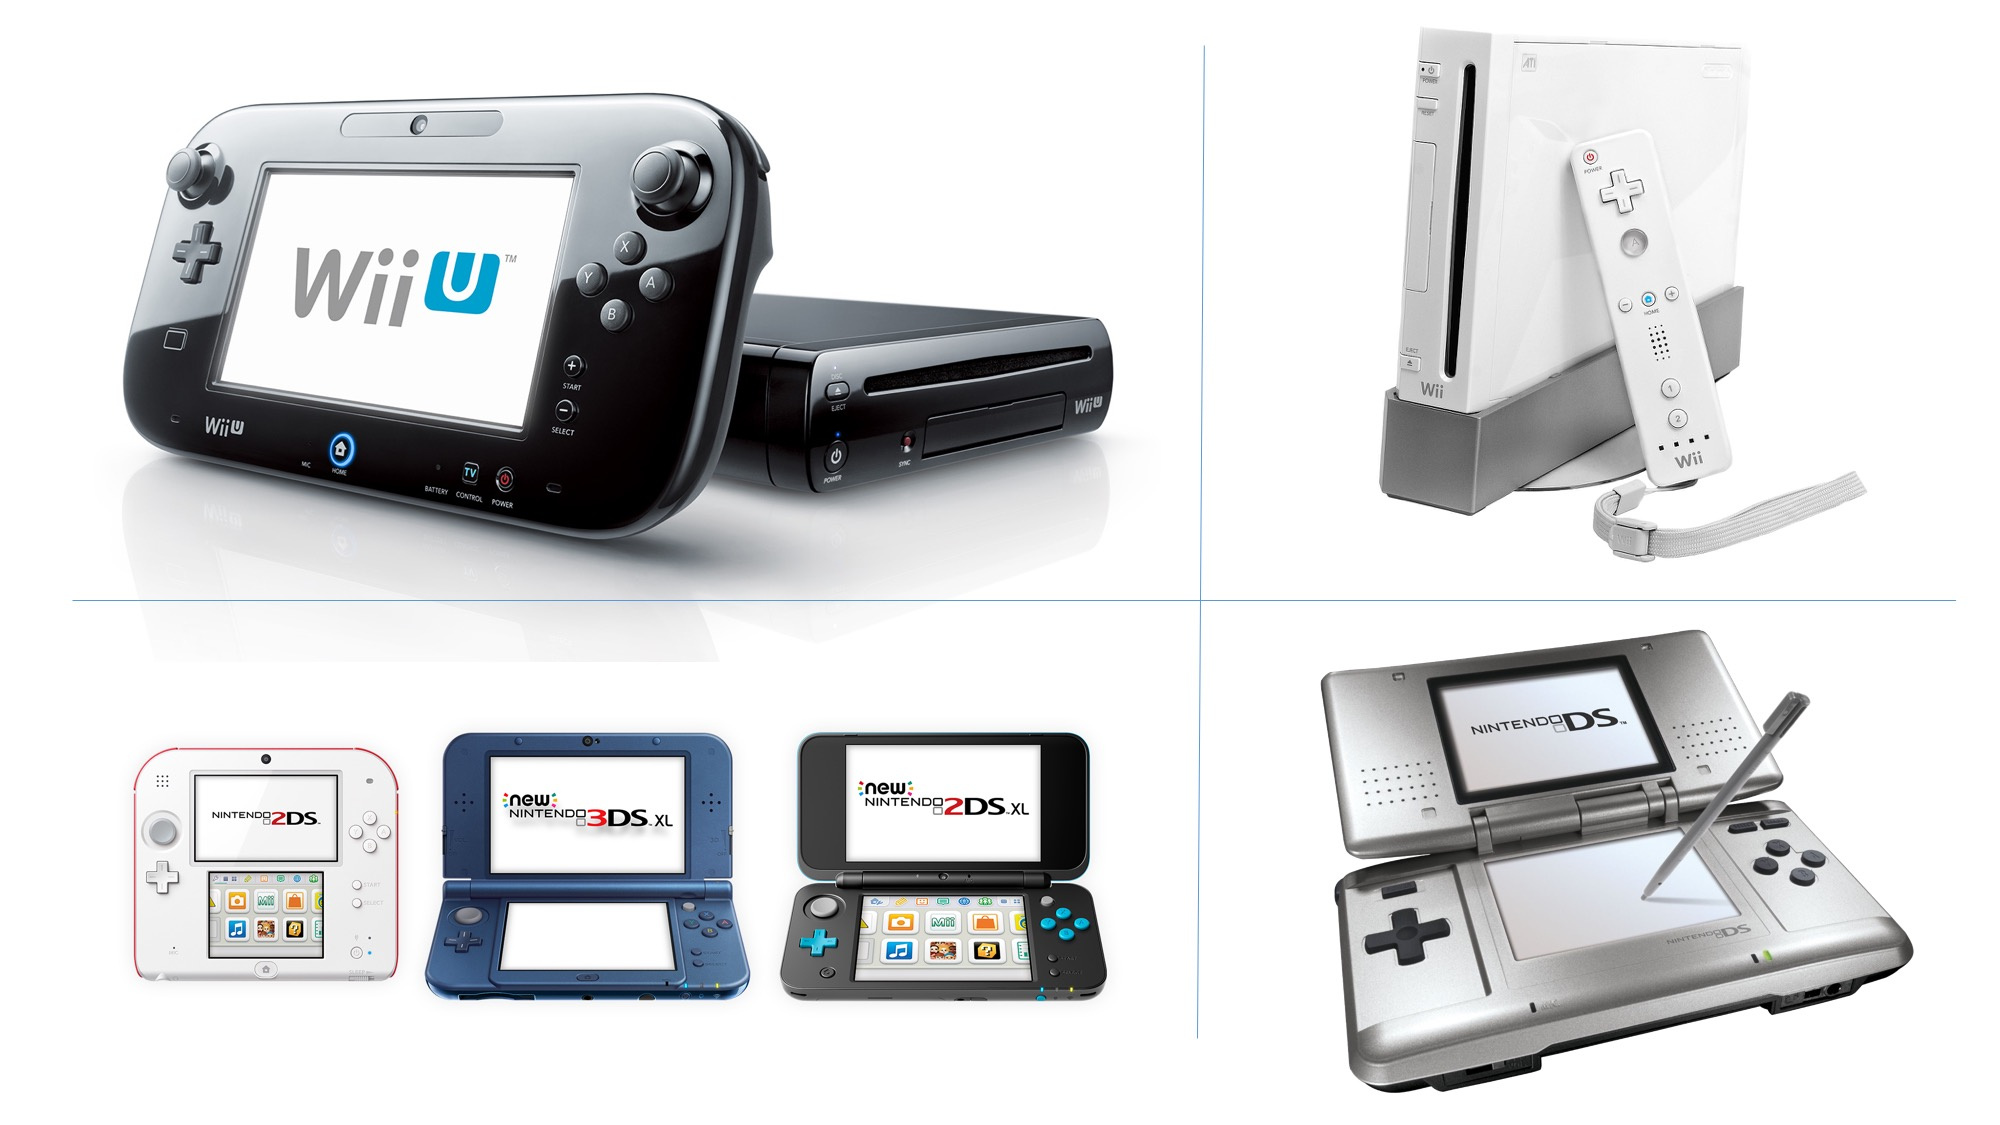 The Top 10 Best-Selling Games For Wii U, 3DS, Wii And Nintendo DS (As Of March 2019)